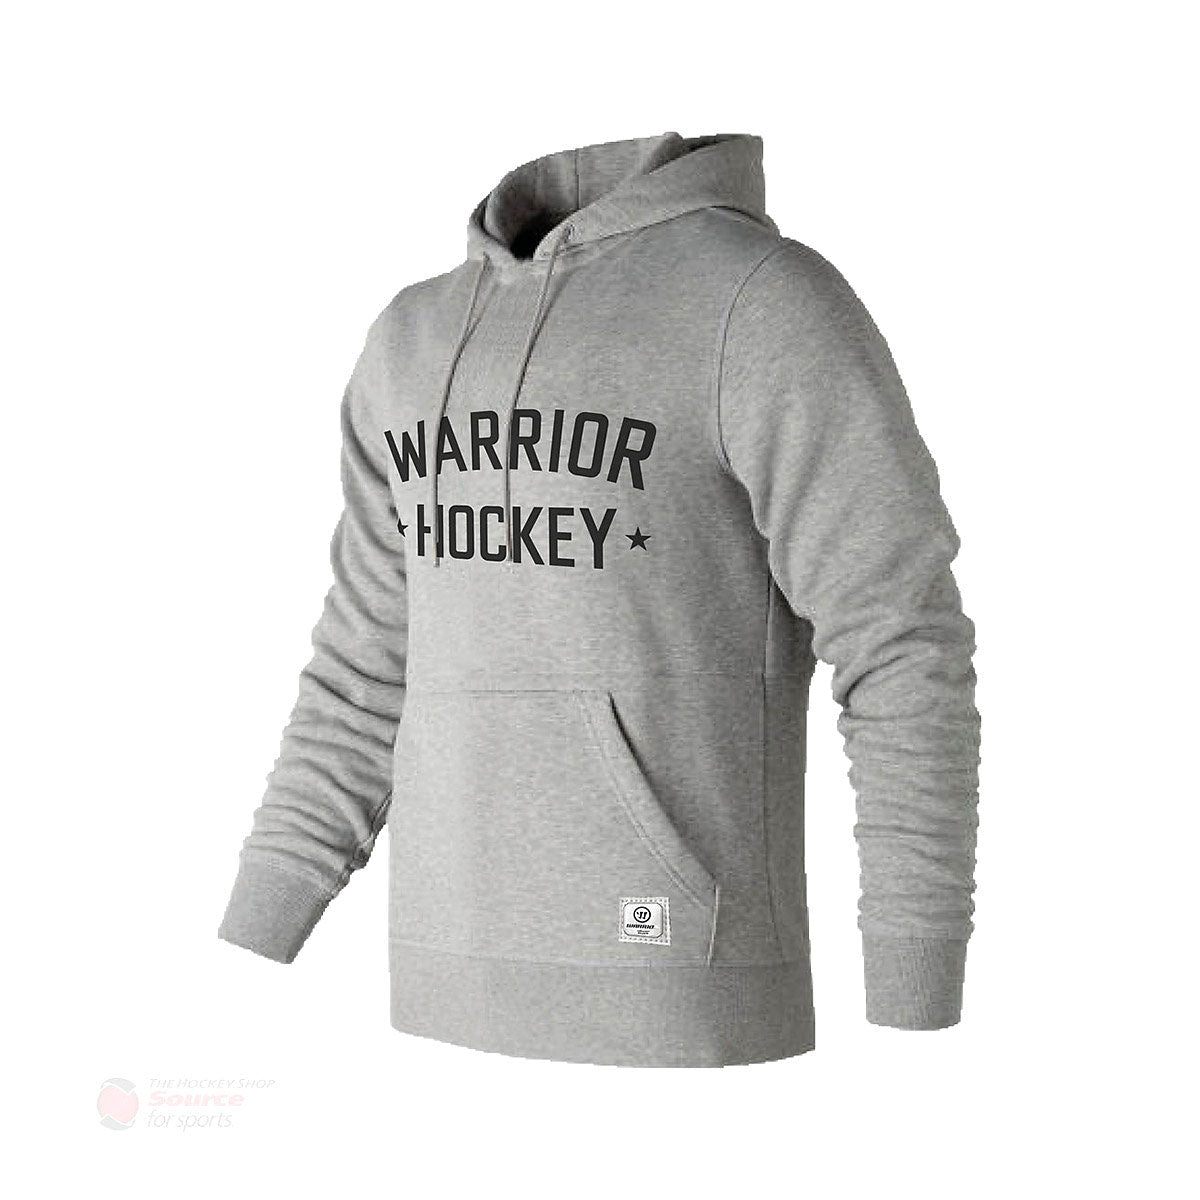 Warrior Hockey Pullover Hoody